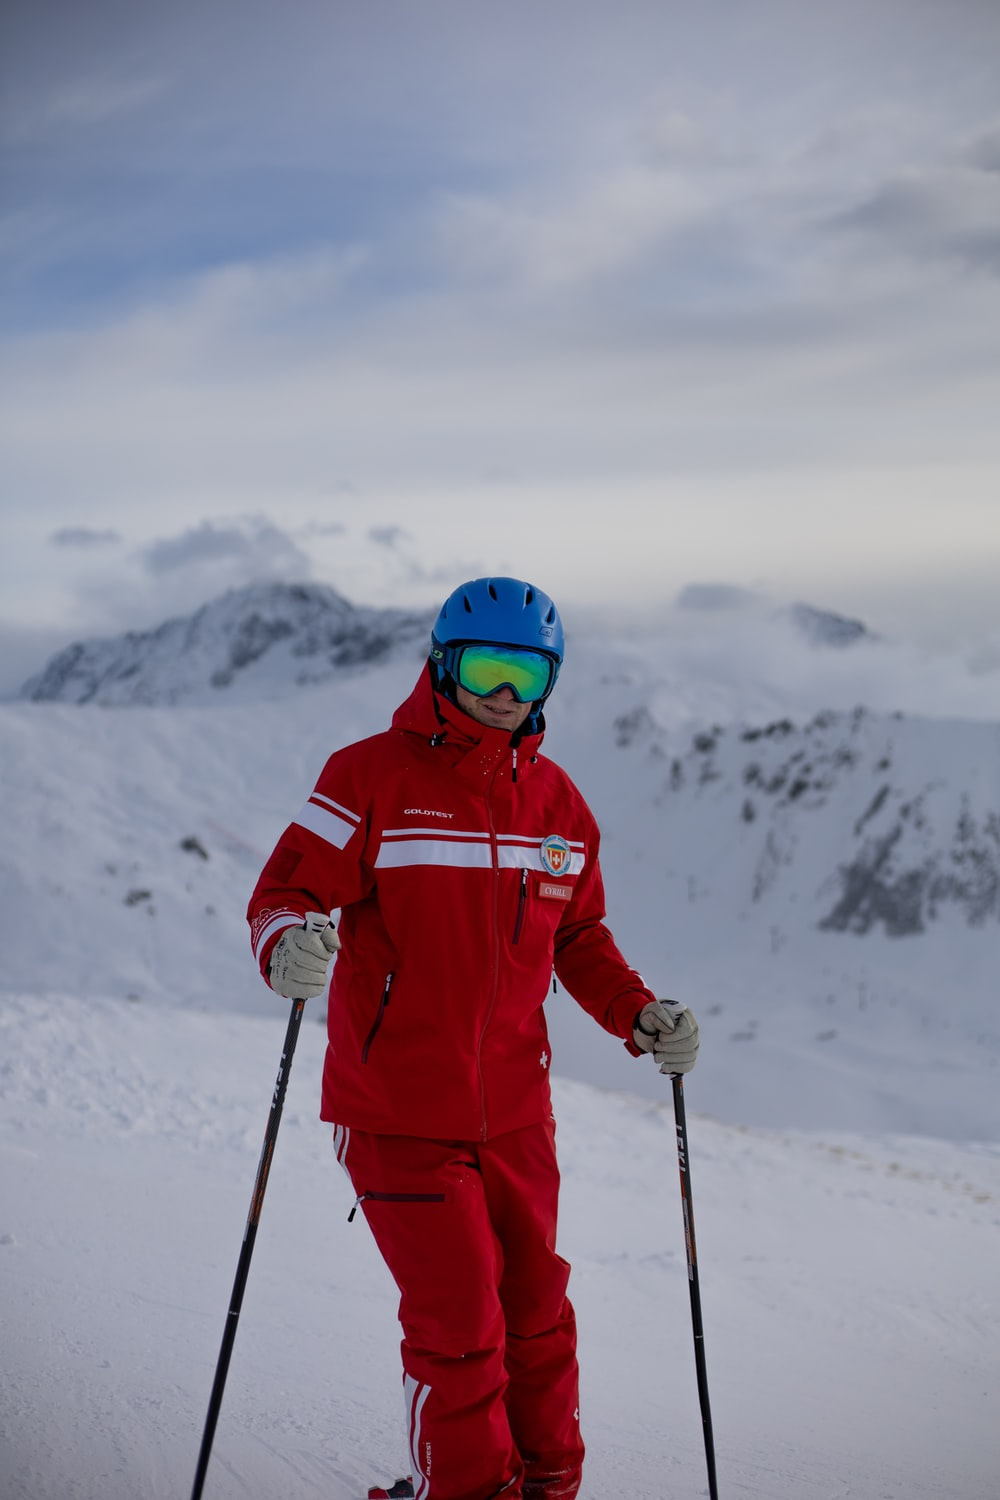 person in red jacket and helmet standing on snow covered ground during daytime